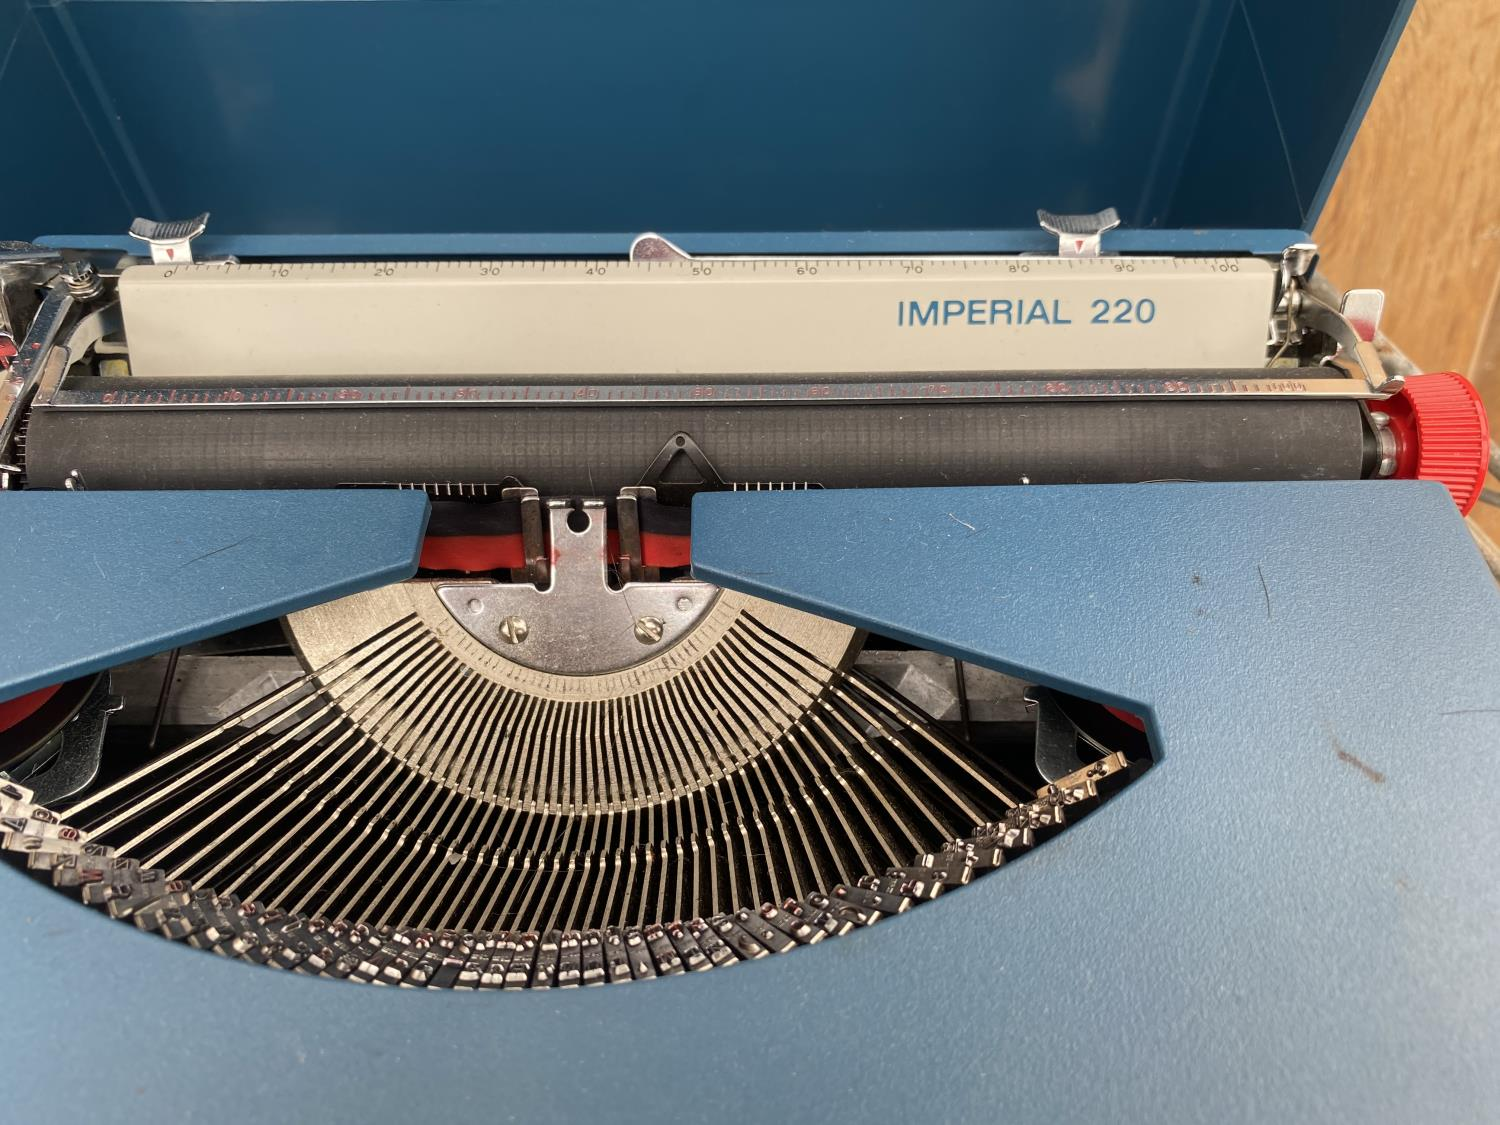 AN IMPERIAL 220 TYPE WRITER WITH CASE - Image 3 of 4